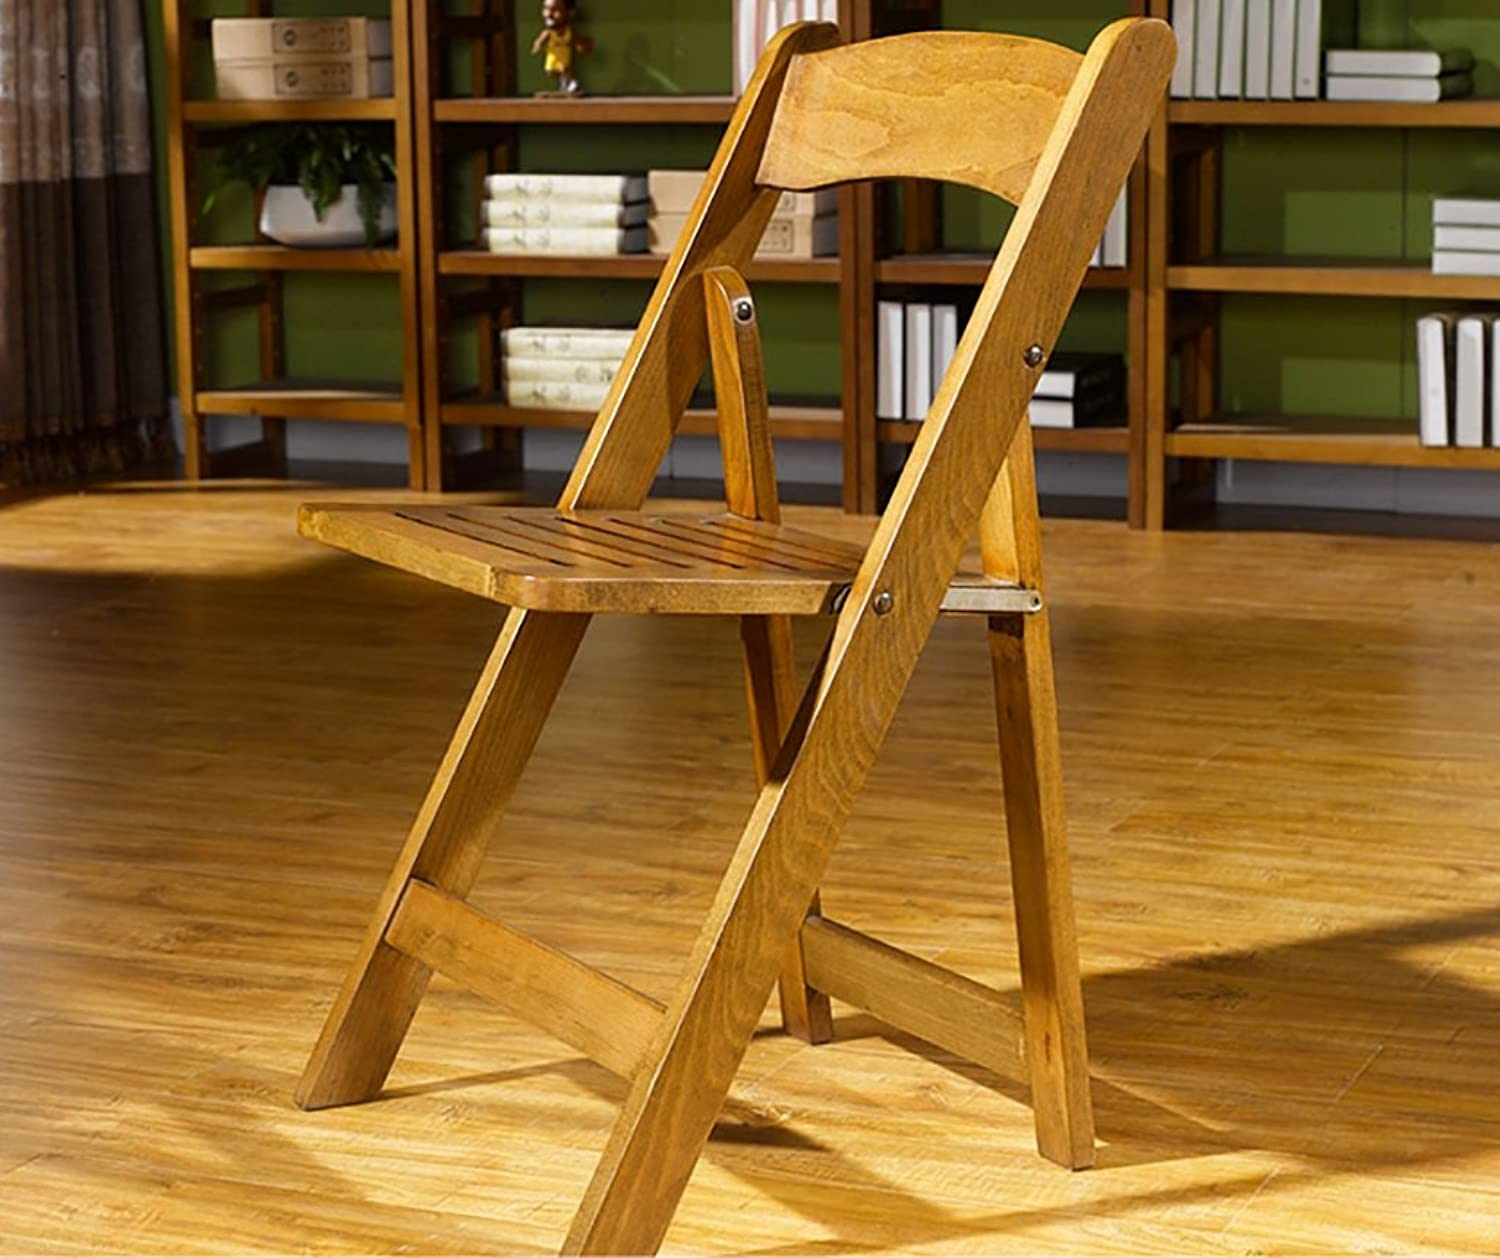 Folding Chair Folding Chairs Leisure Chairs Back Chairs Solid Wood Chairs Back Chairs Folding Computer Chairs Leisure Office Chairs